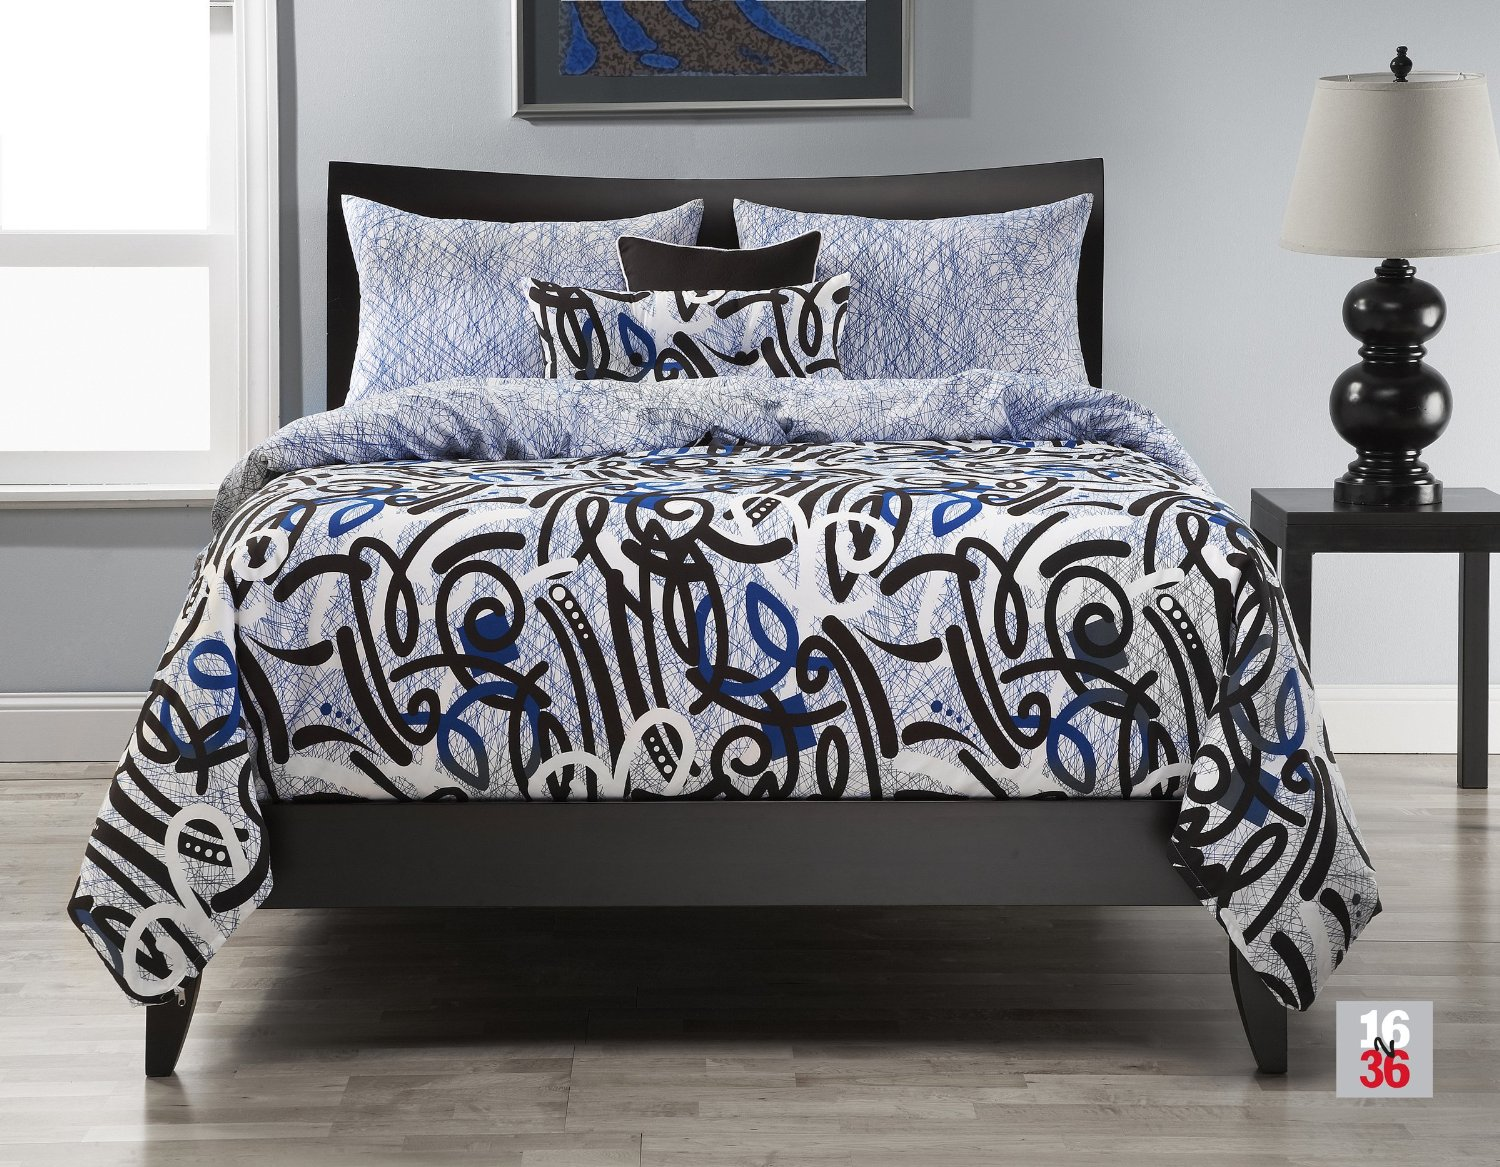 Black and White Graffiti Style Urban Modern Bed Set. Total Fab  Graffiti Comforter   Bedding Sets for Boys   Girls